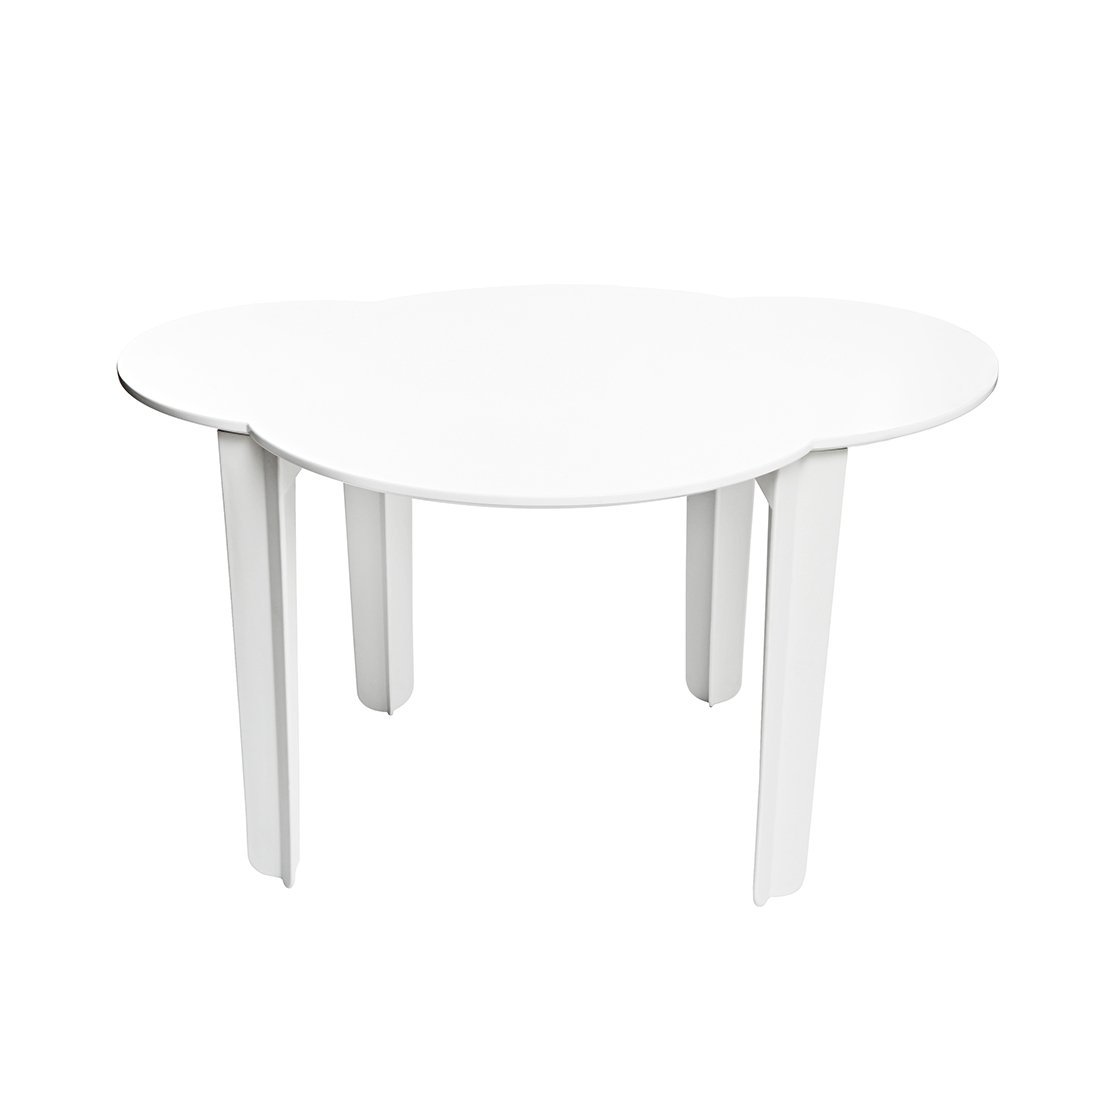 [FD519WHT] Wolk Coffee Table